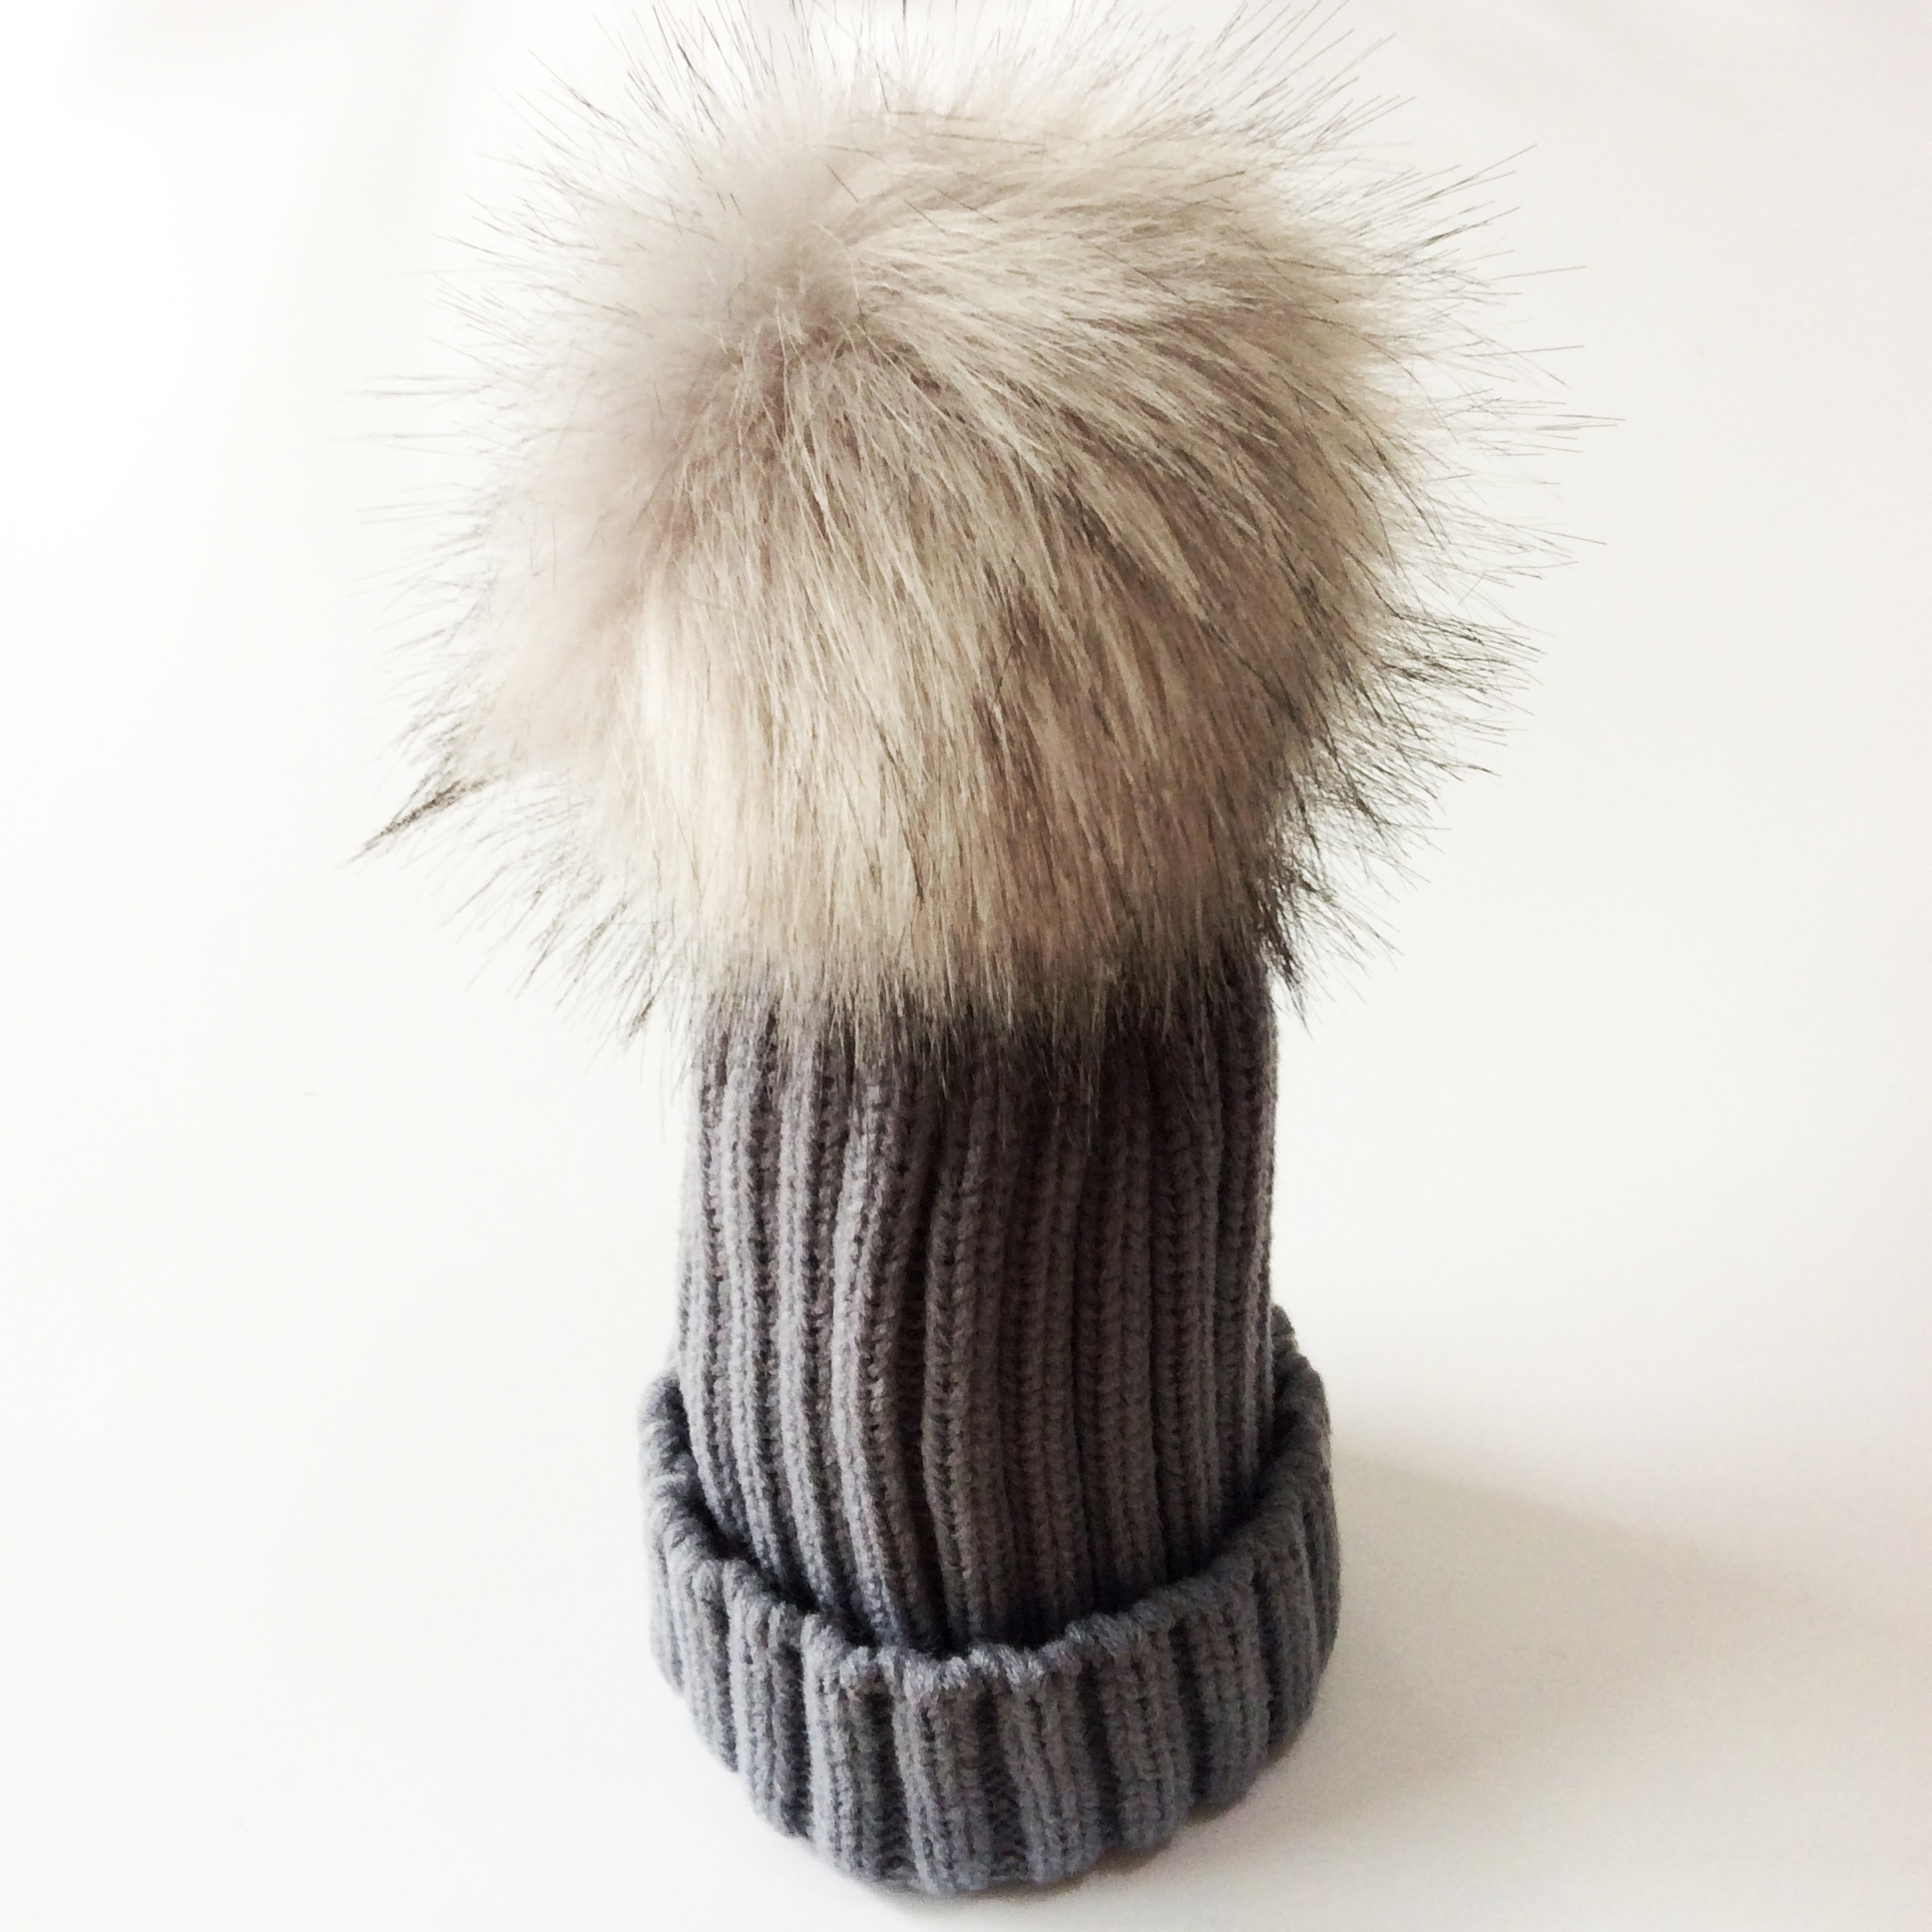 977c03b4004 Kids Cap Winter Faux Fur Hat For Girls Crochet Children s Hats Caps Fake  Raccoon Hair Baby Hat-in Hats   Caps from Mother   Kids on Aliexpress.com